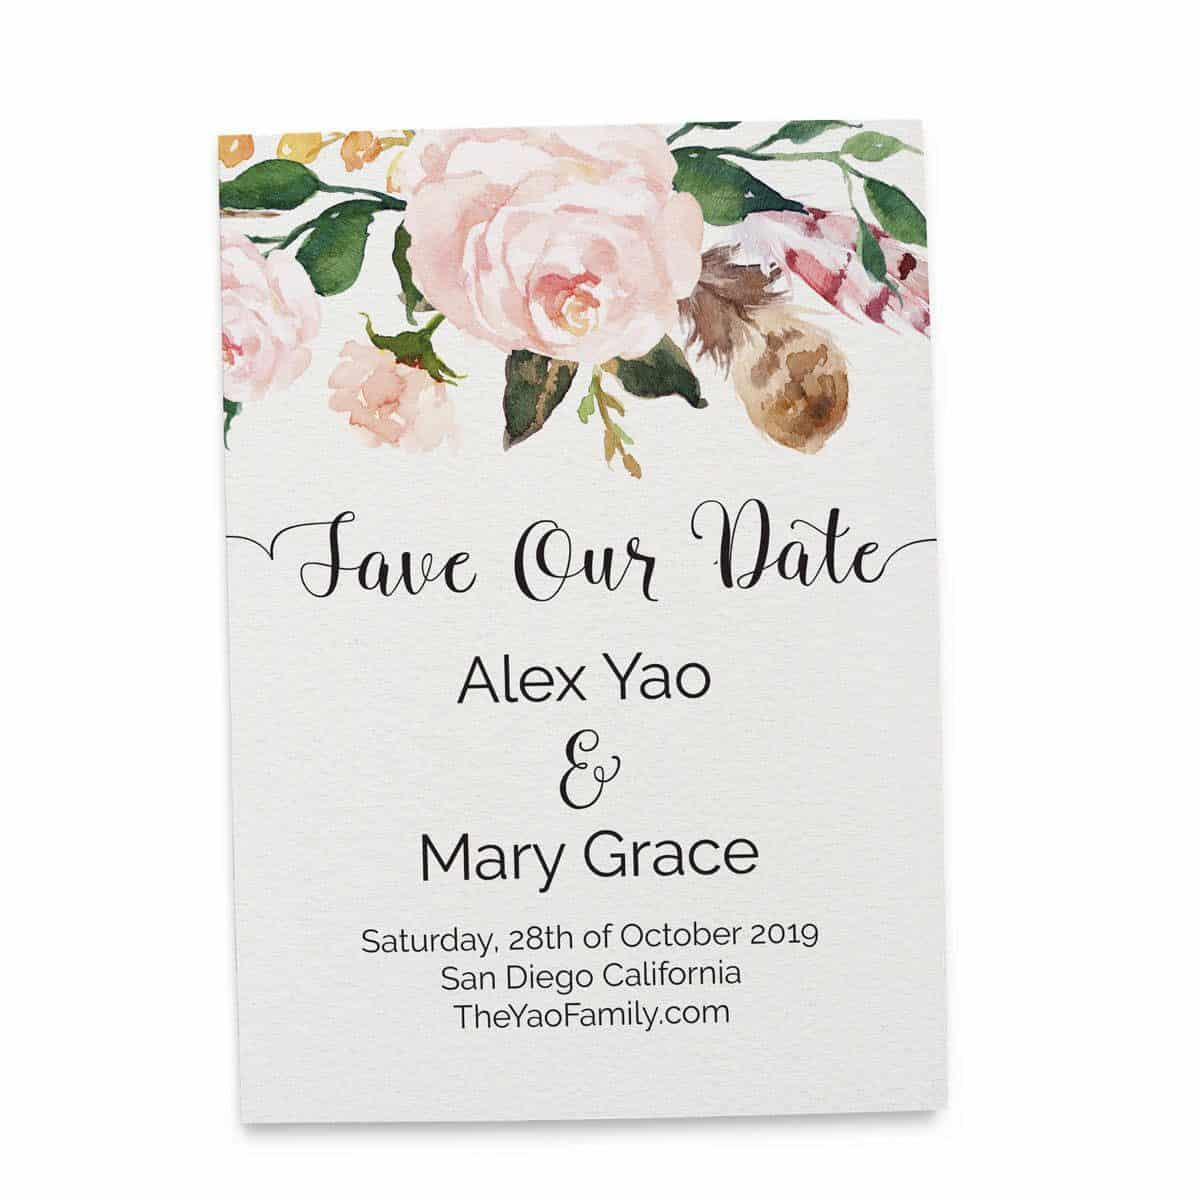 Save the Date Cards, Floral Boho Bohemian Save the Date Wedding Cards